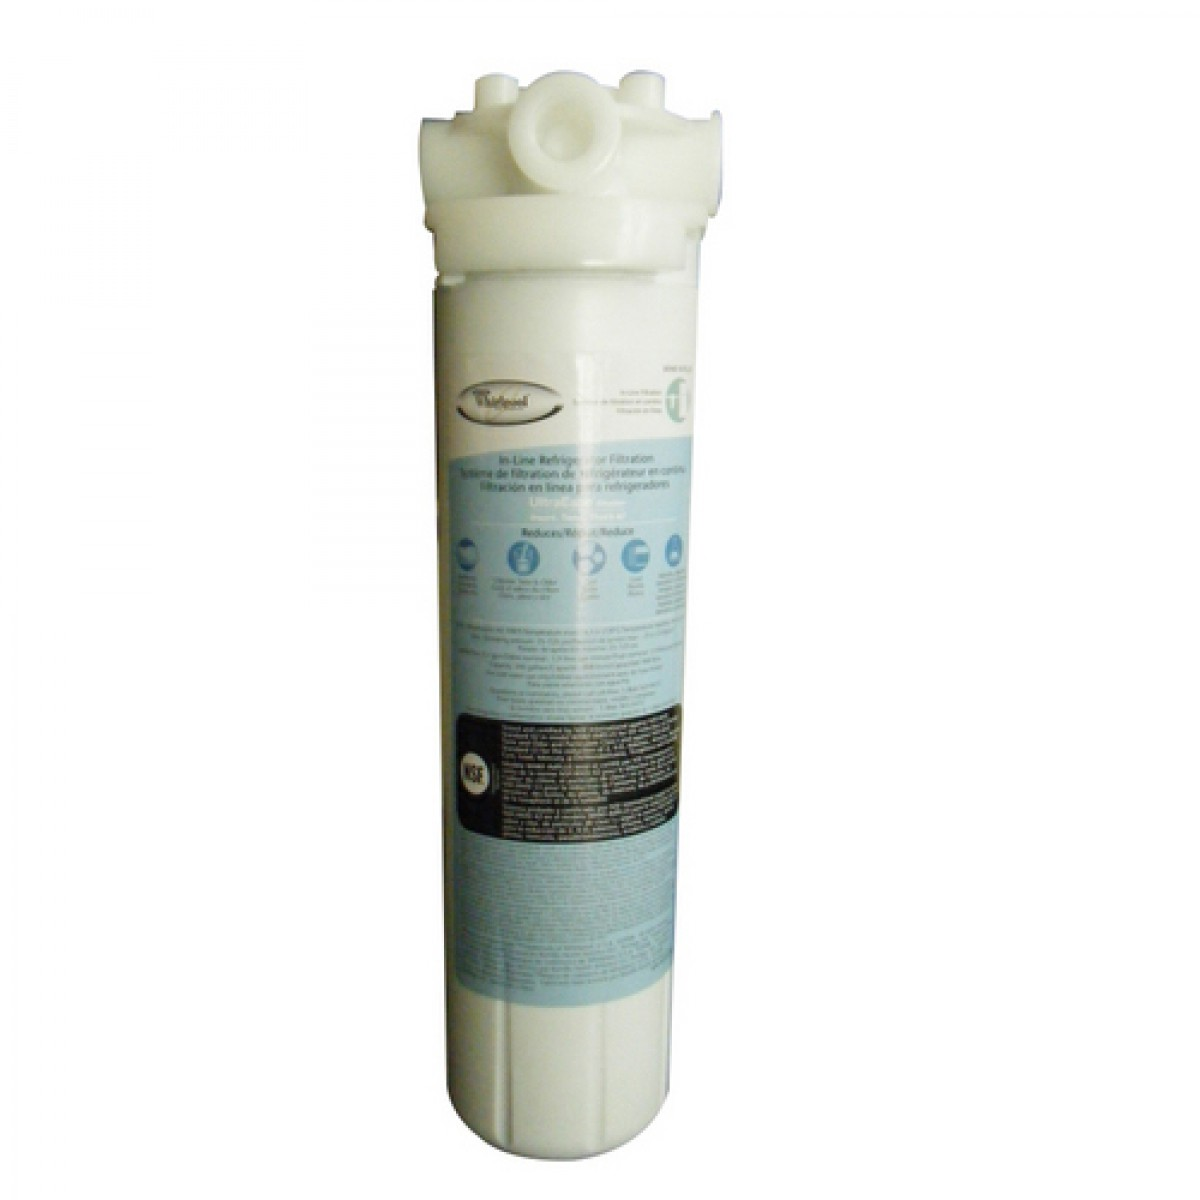 Whkf Implus Whirlpool Water Filtration System